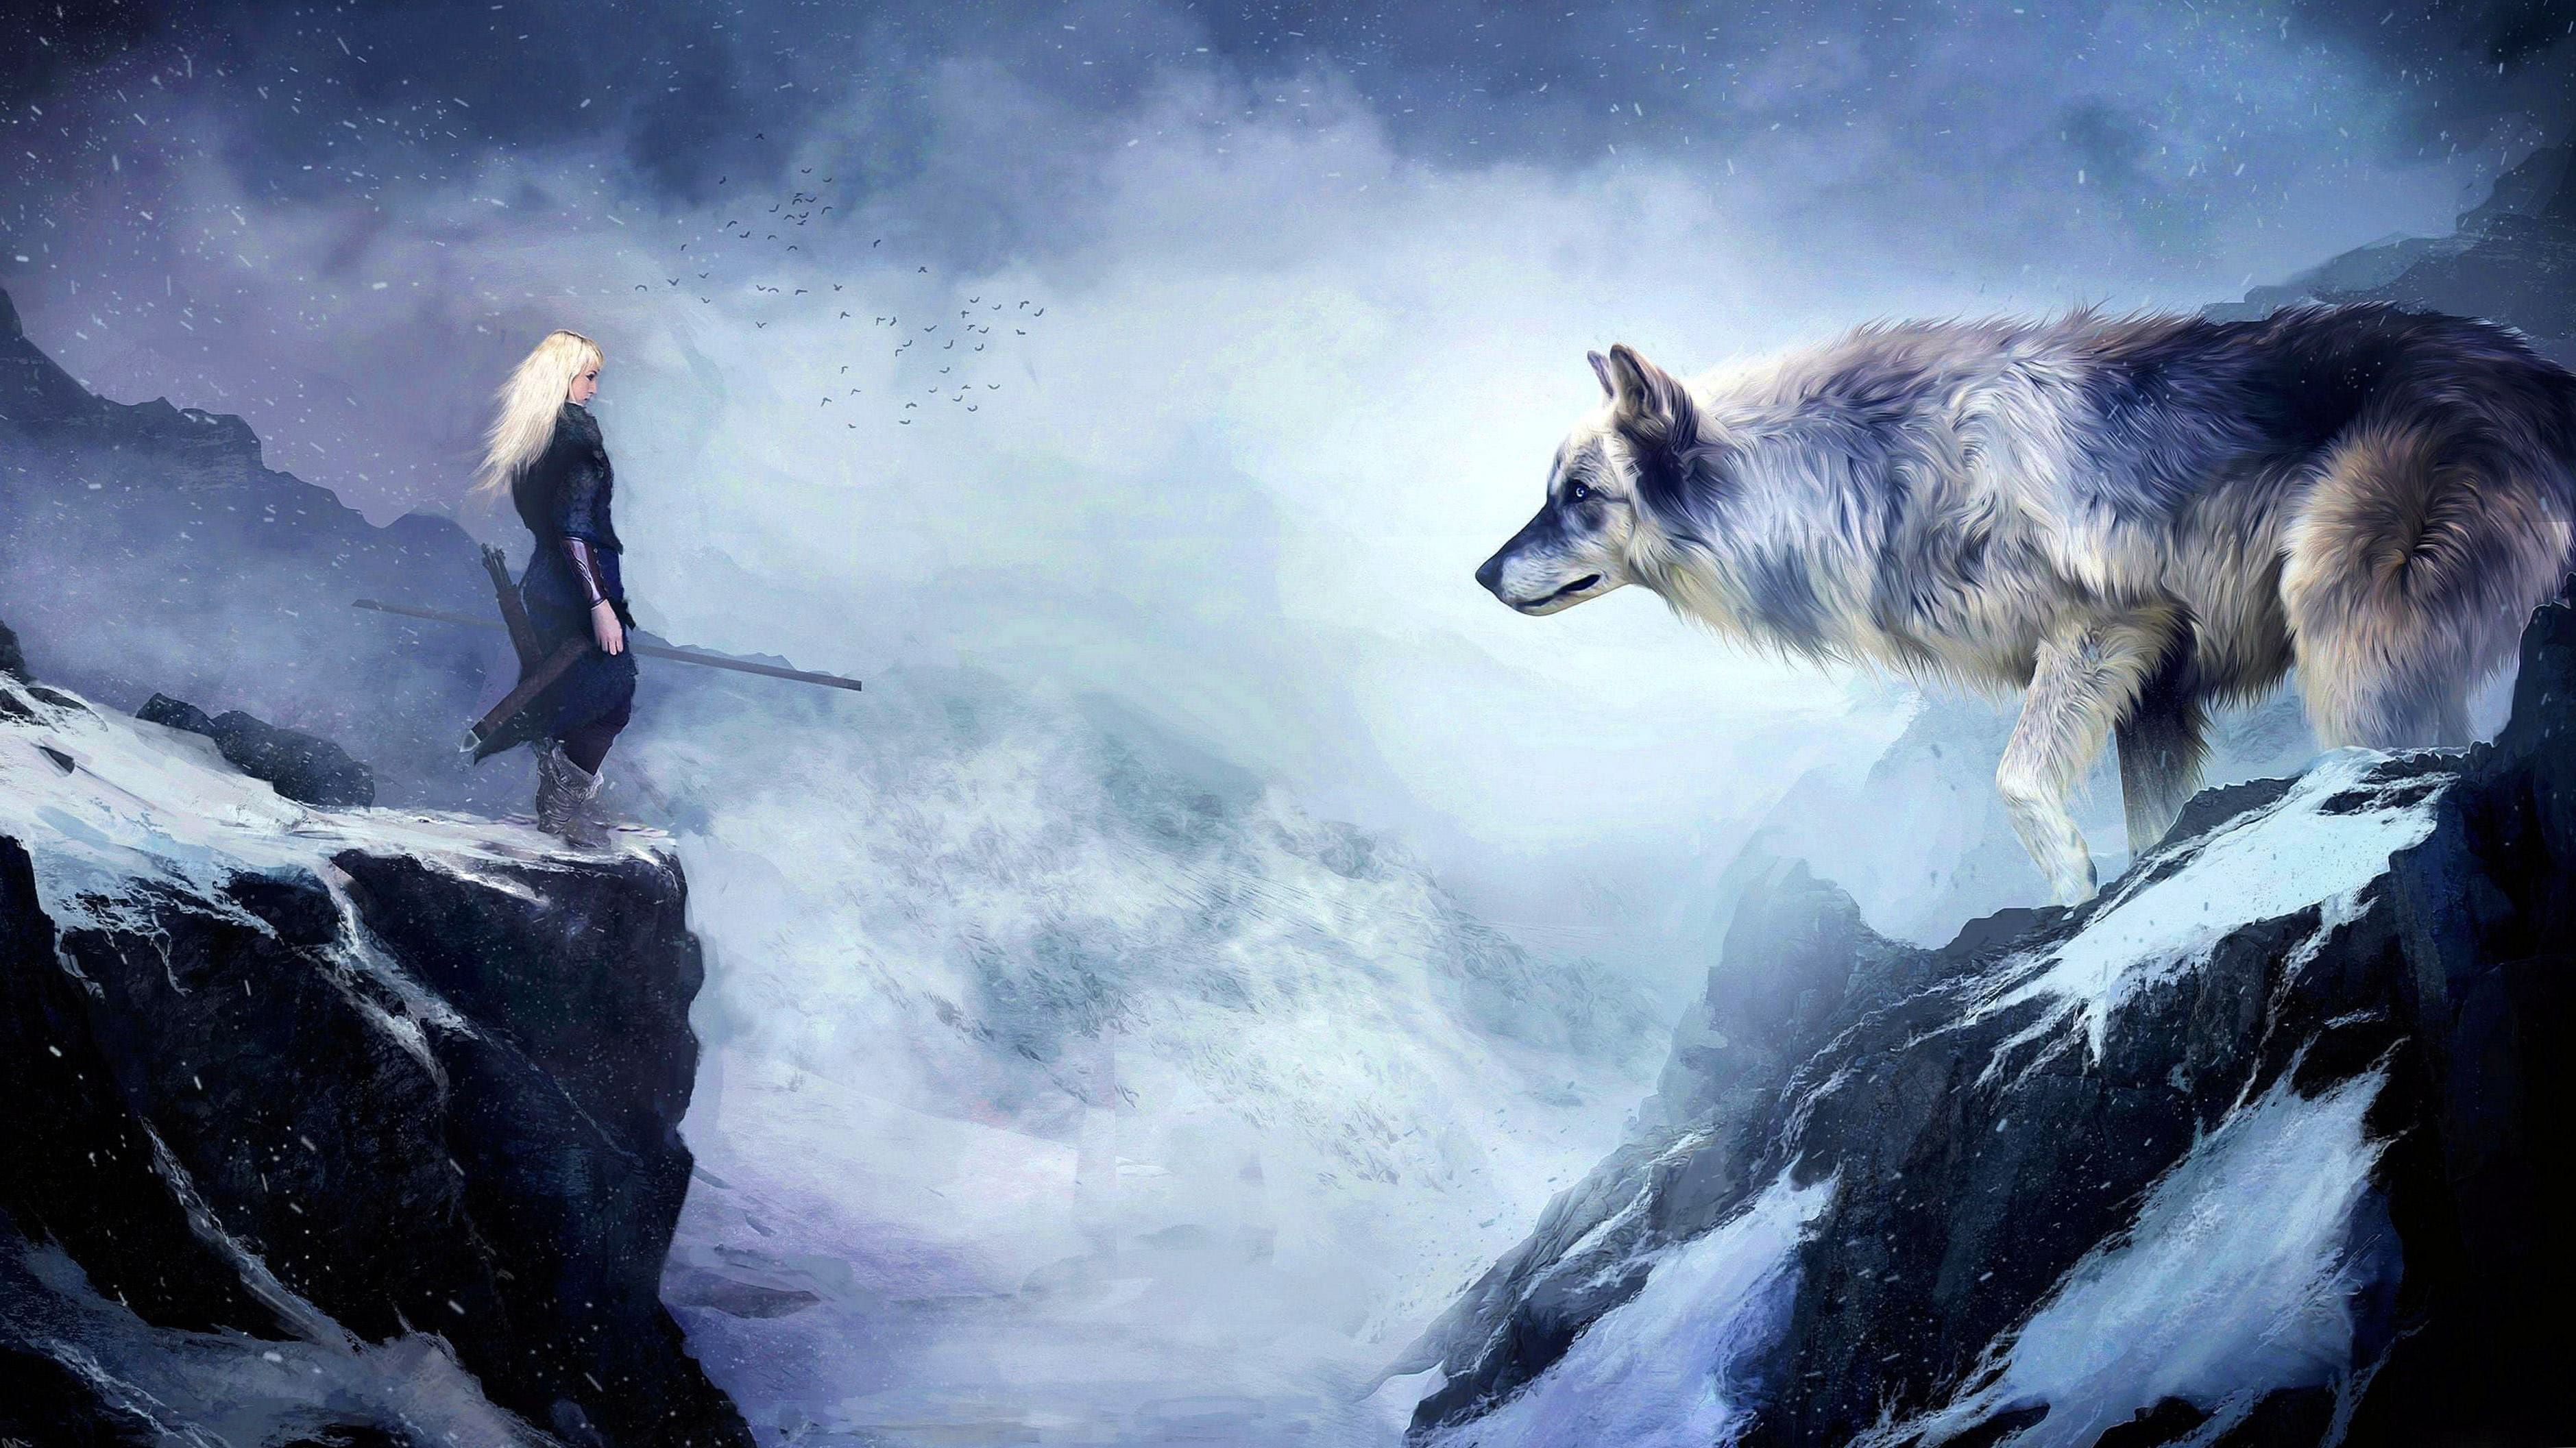 Wolf Girl Wallpapers For Mobile